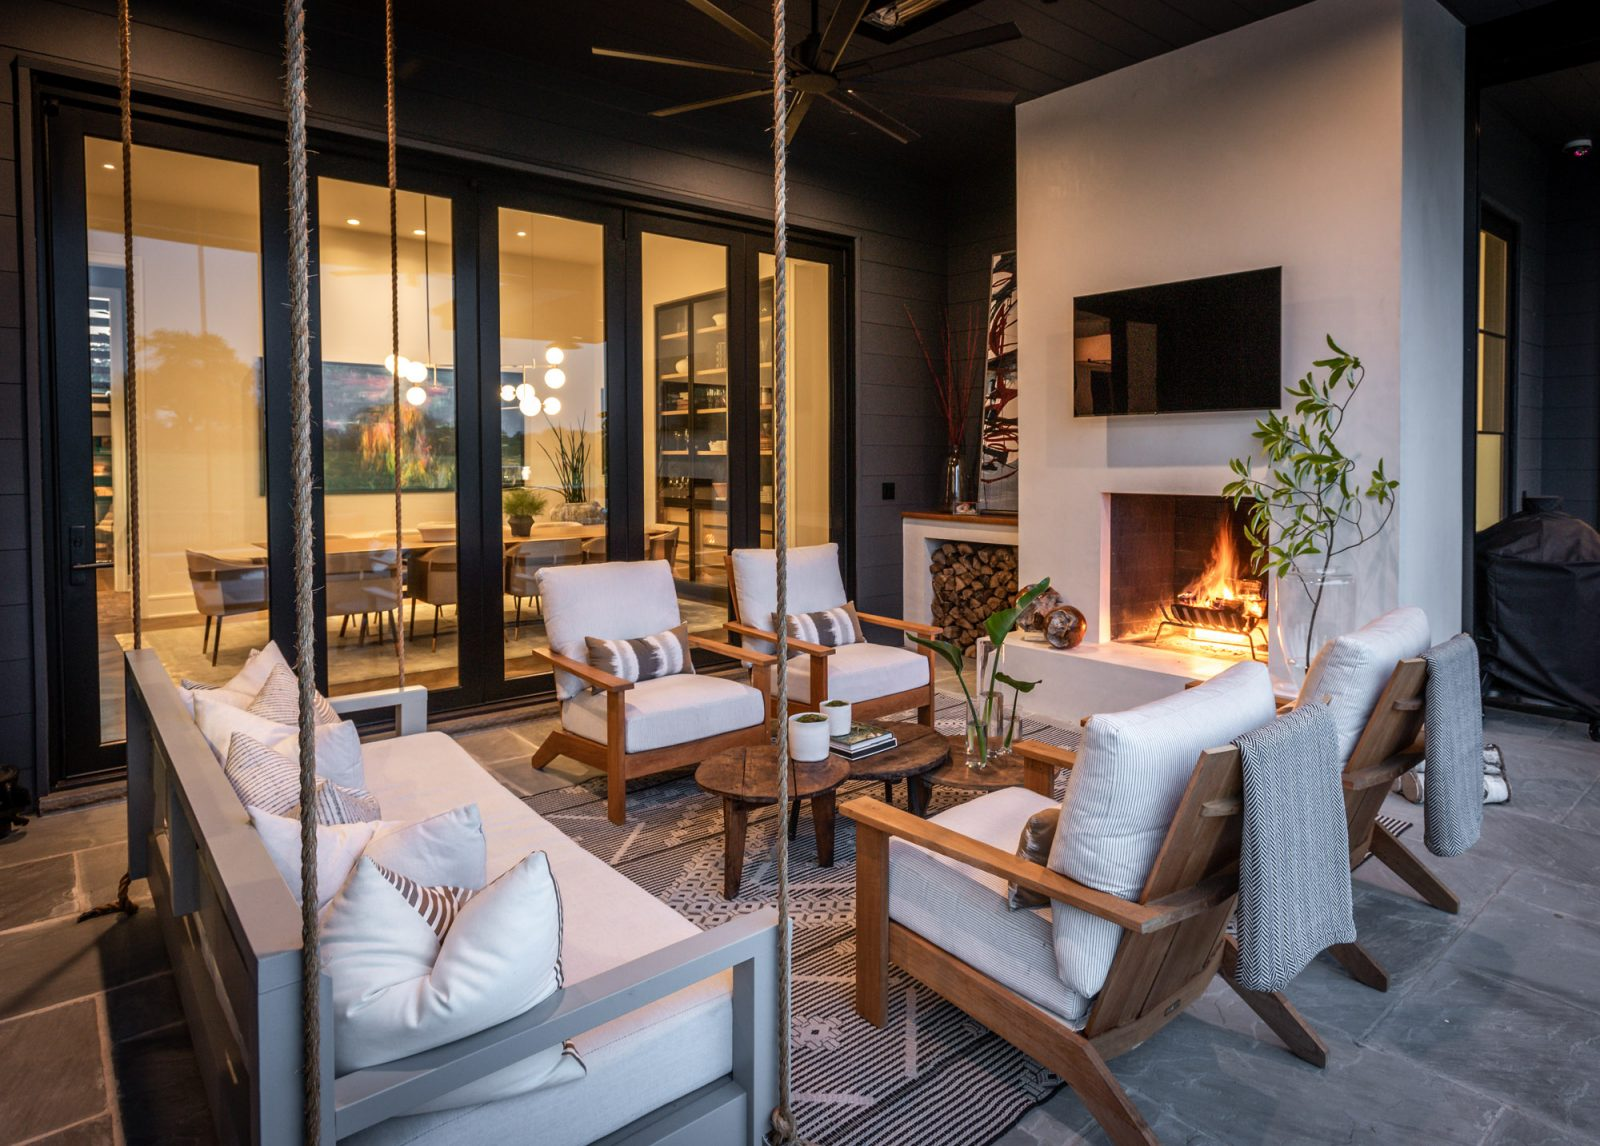 Covered patio outdoor design by marie-joe bouffard of jfy designs white outdoor chairs, porch swing outdoor sitting area fire place